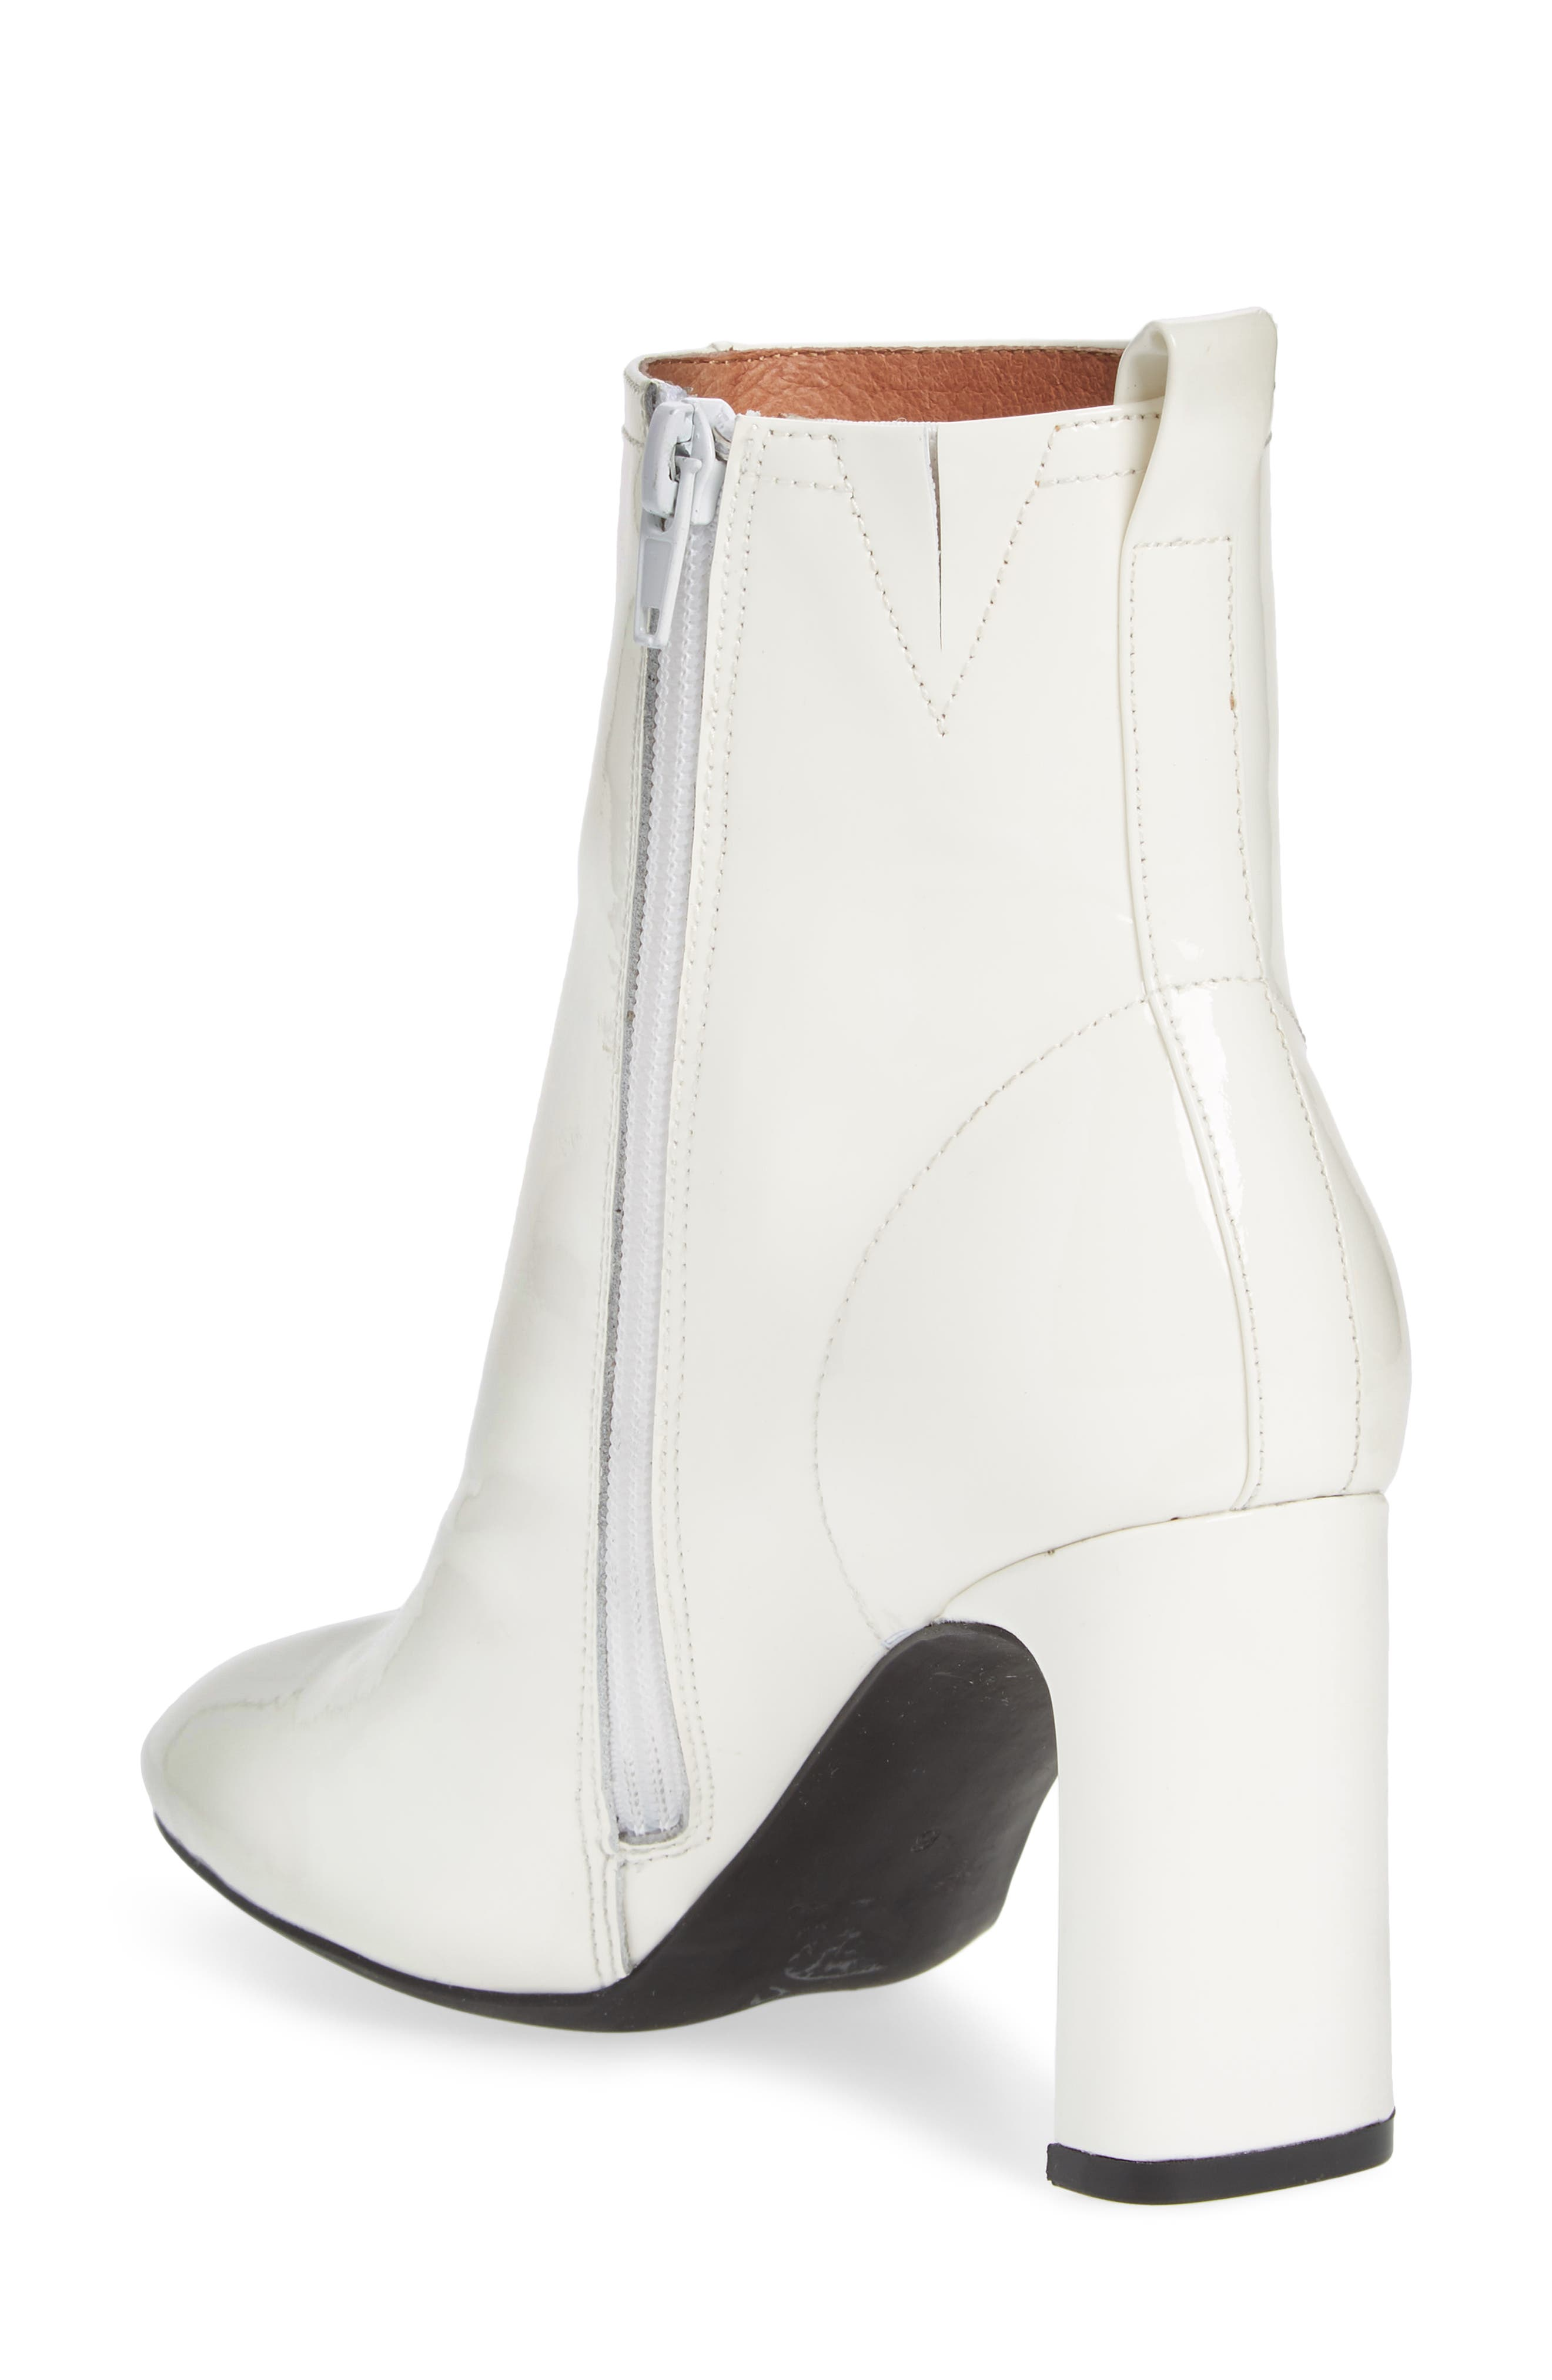 Chapel Curved Heel Bootie,                             Alternate thumbnail 2, color,                             White Patent Leather